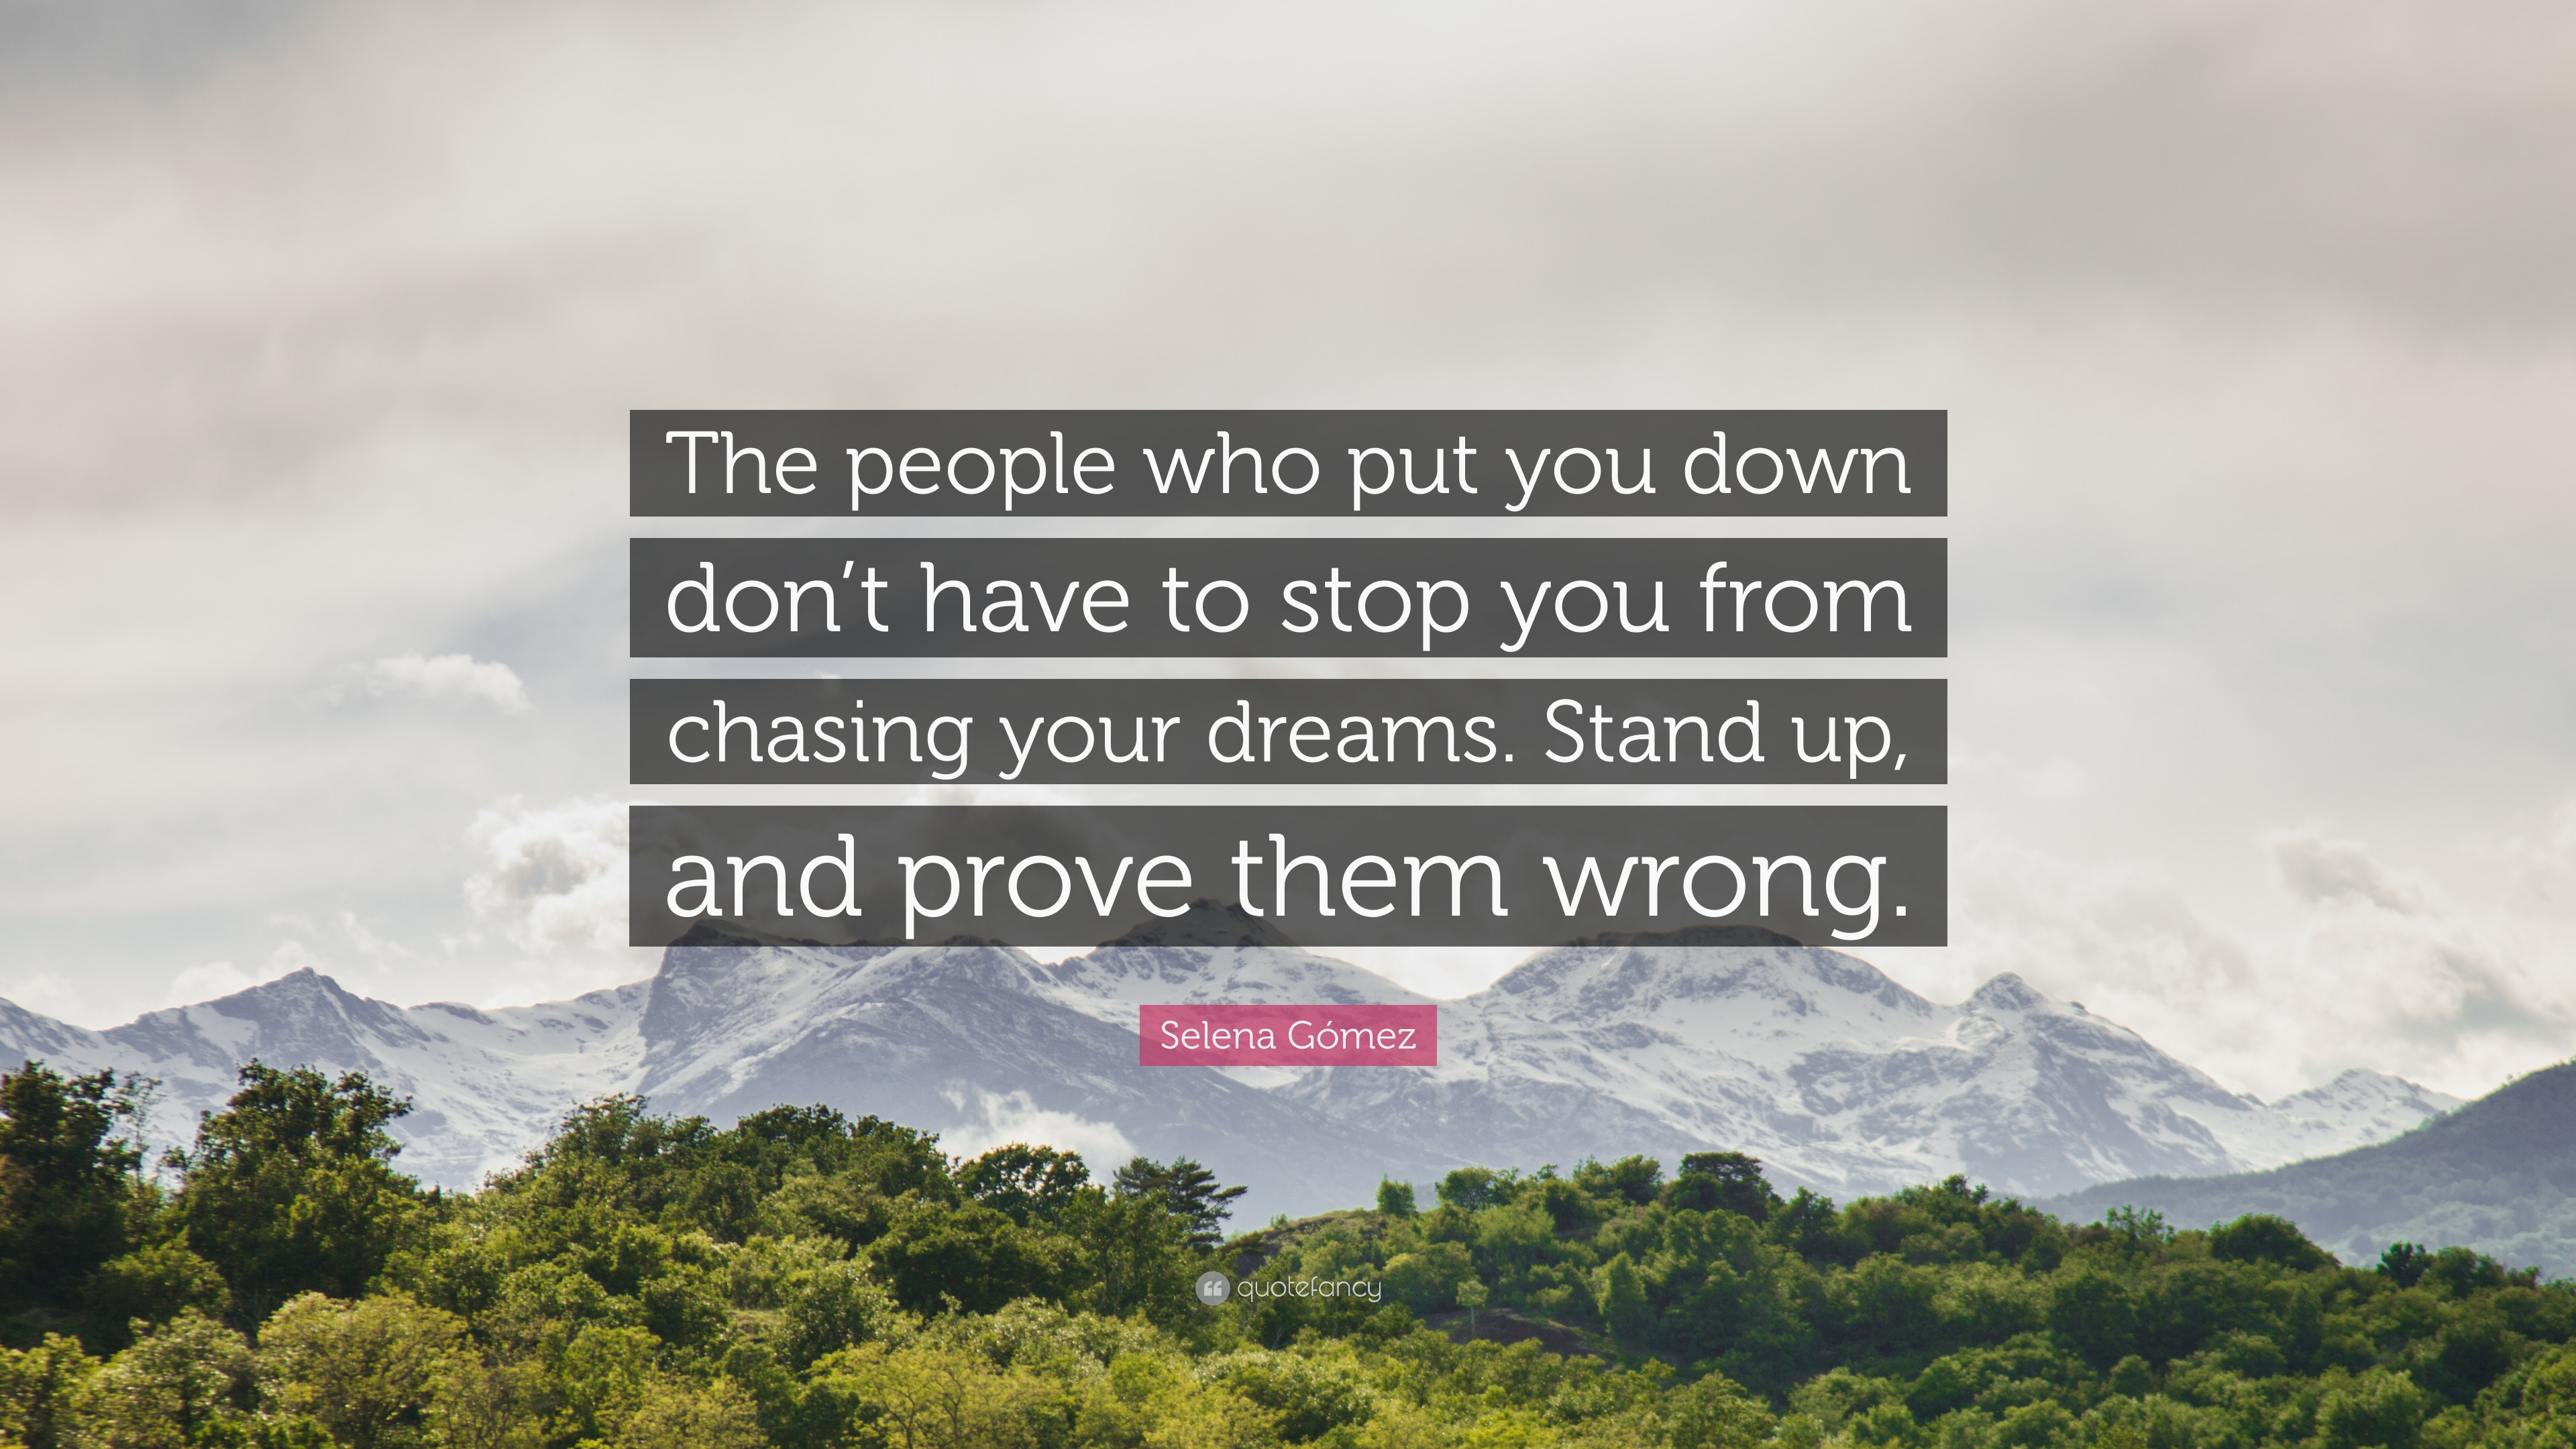 selena gómez quote the people who put you down don t have to stop